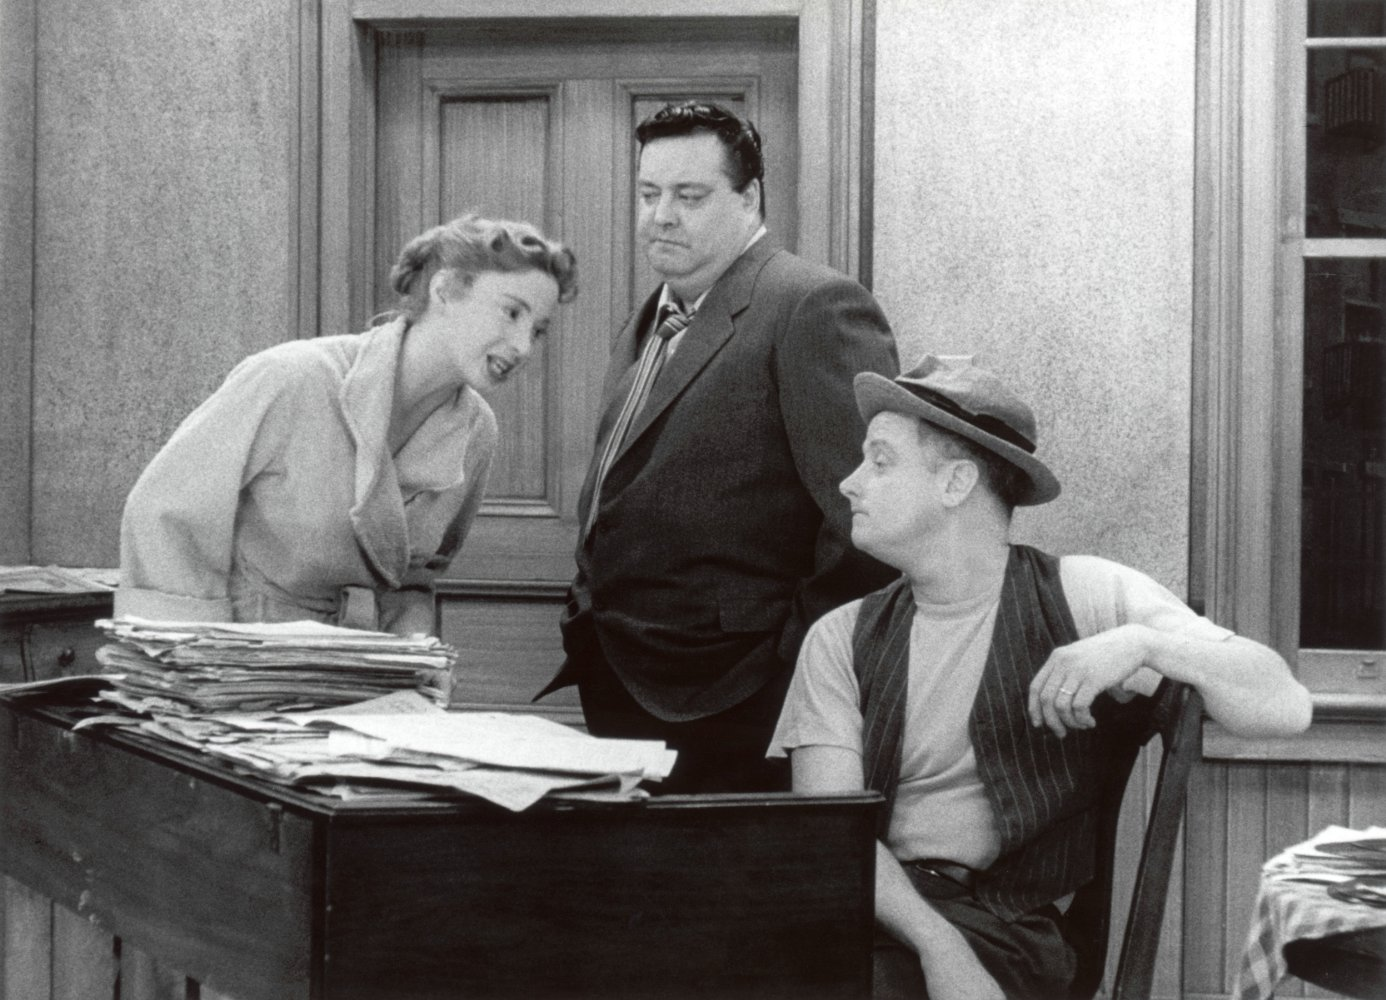 Jackie_Gleason_Art_Carney_and_Audrey_Meadows_in_The_Hone